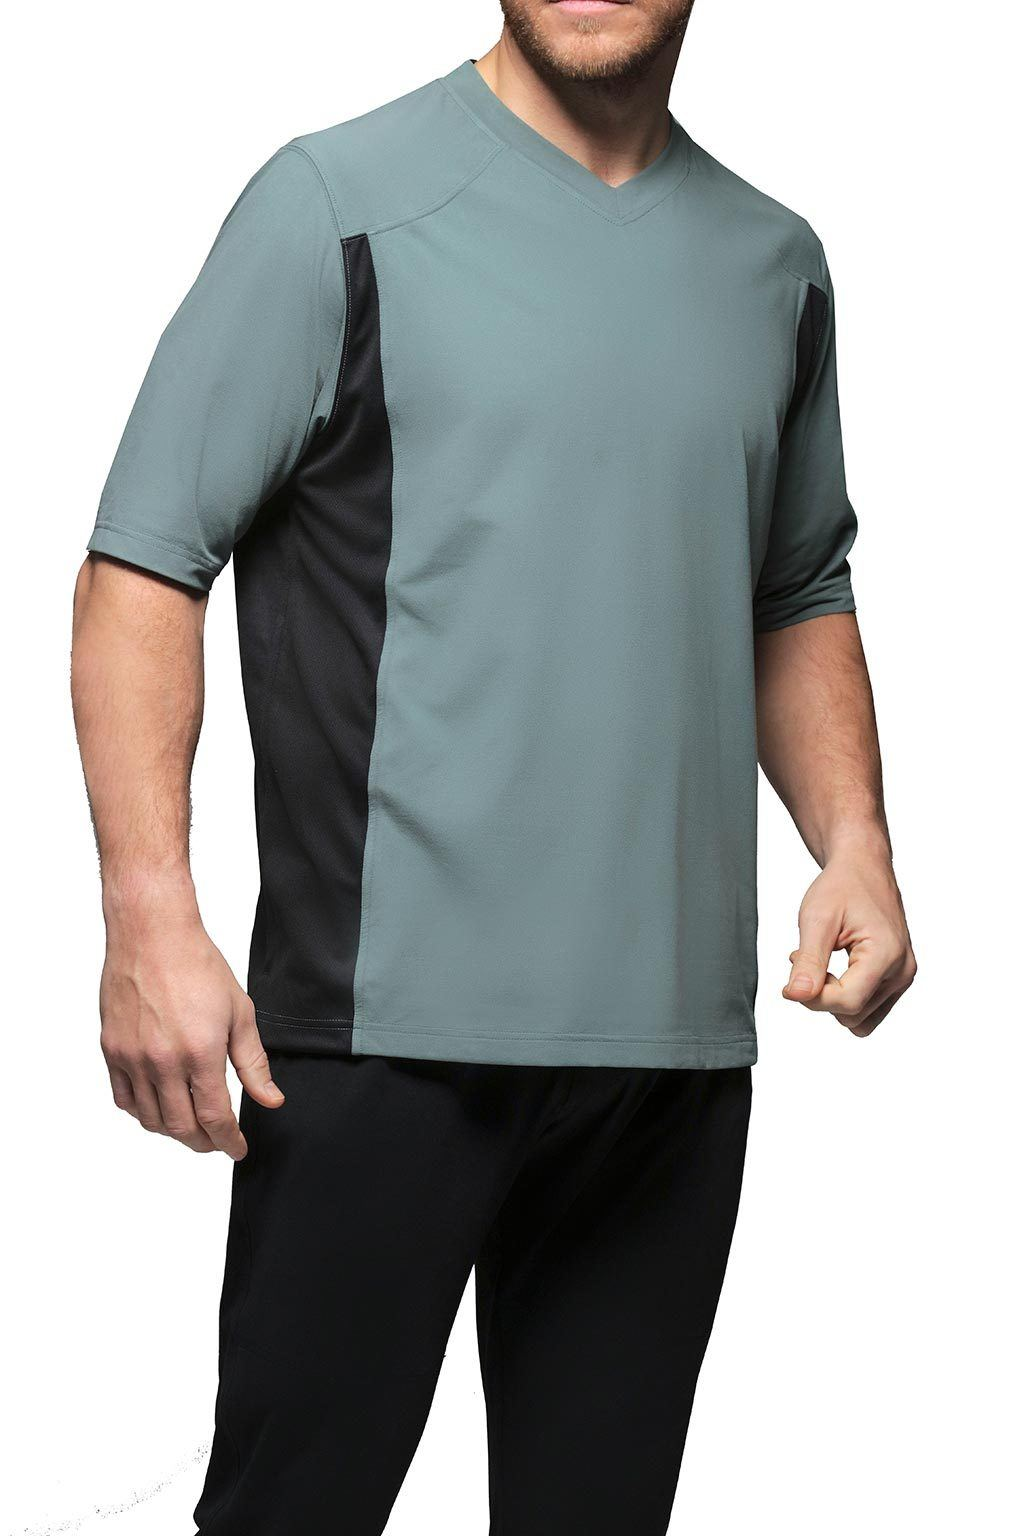 Men's High V-Neck T-Shirt Loungewear - Graphite